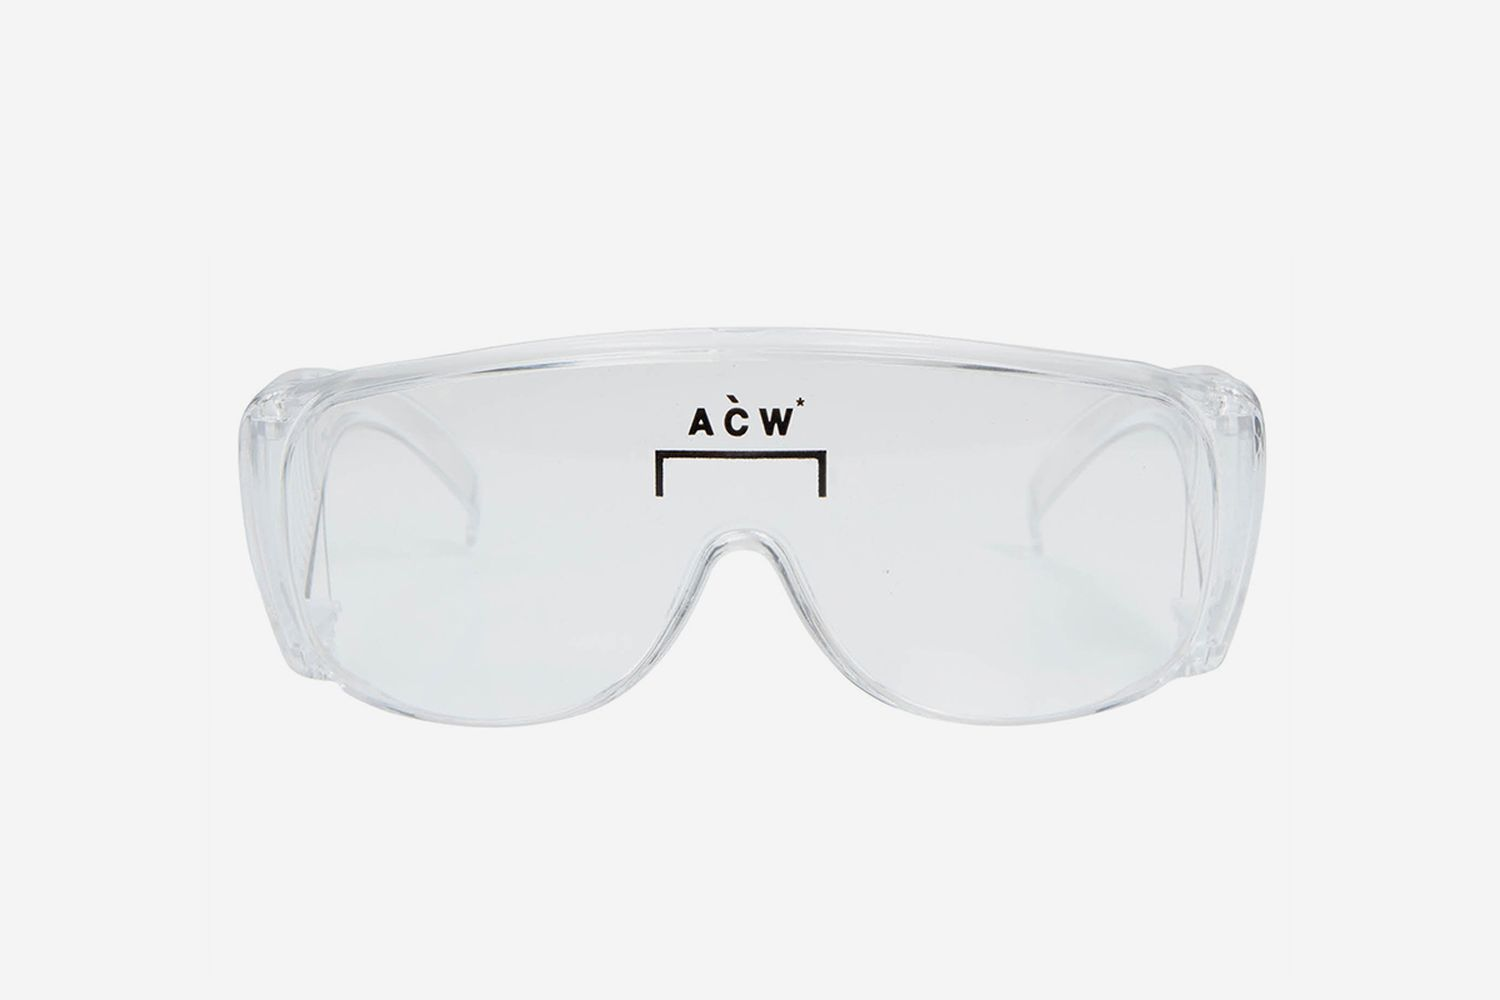 Heavy Duty Acetate Glasses